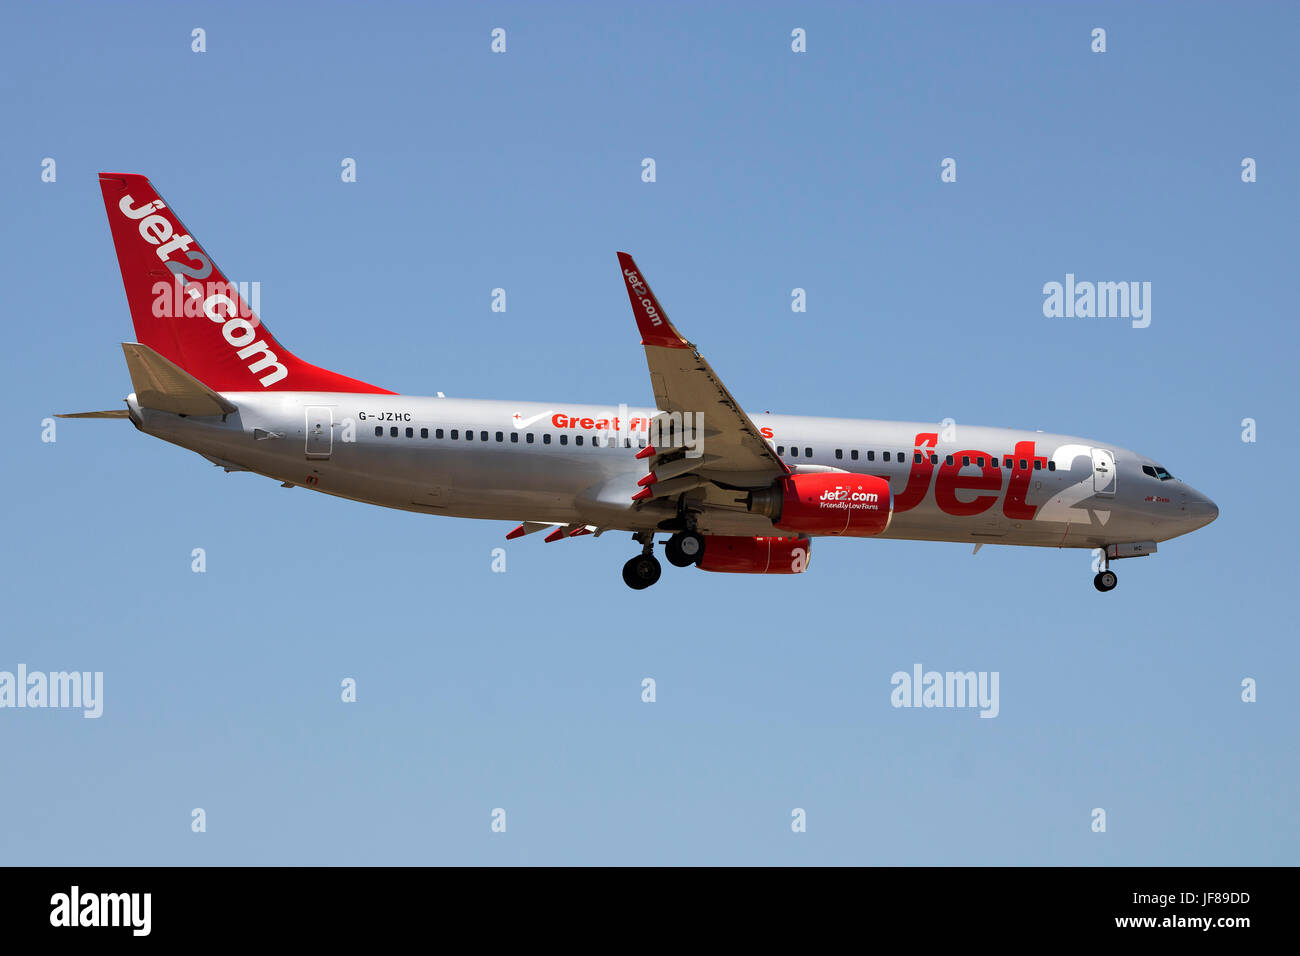 Jet2 Boeing 737-8K5 [G-JZHC] on final approach runway 31. - Stock Image